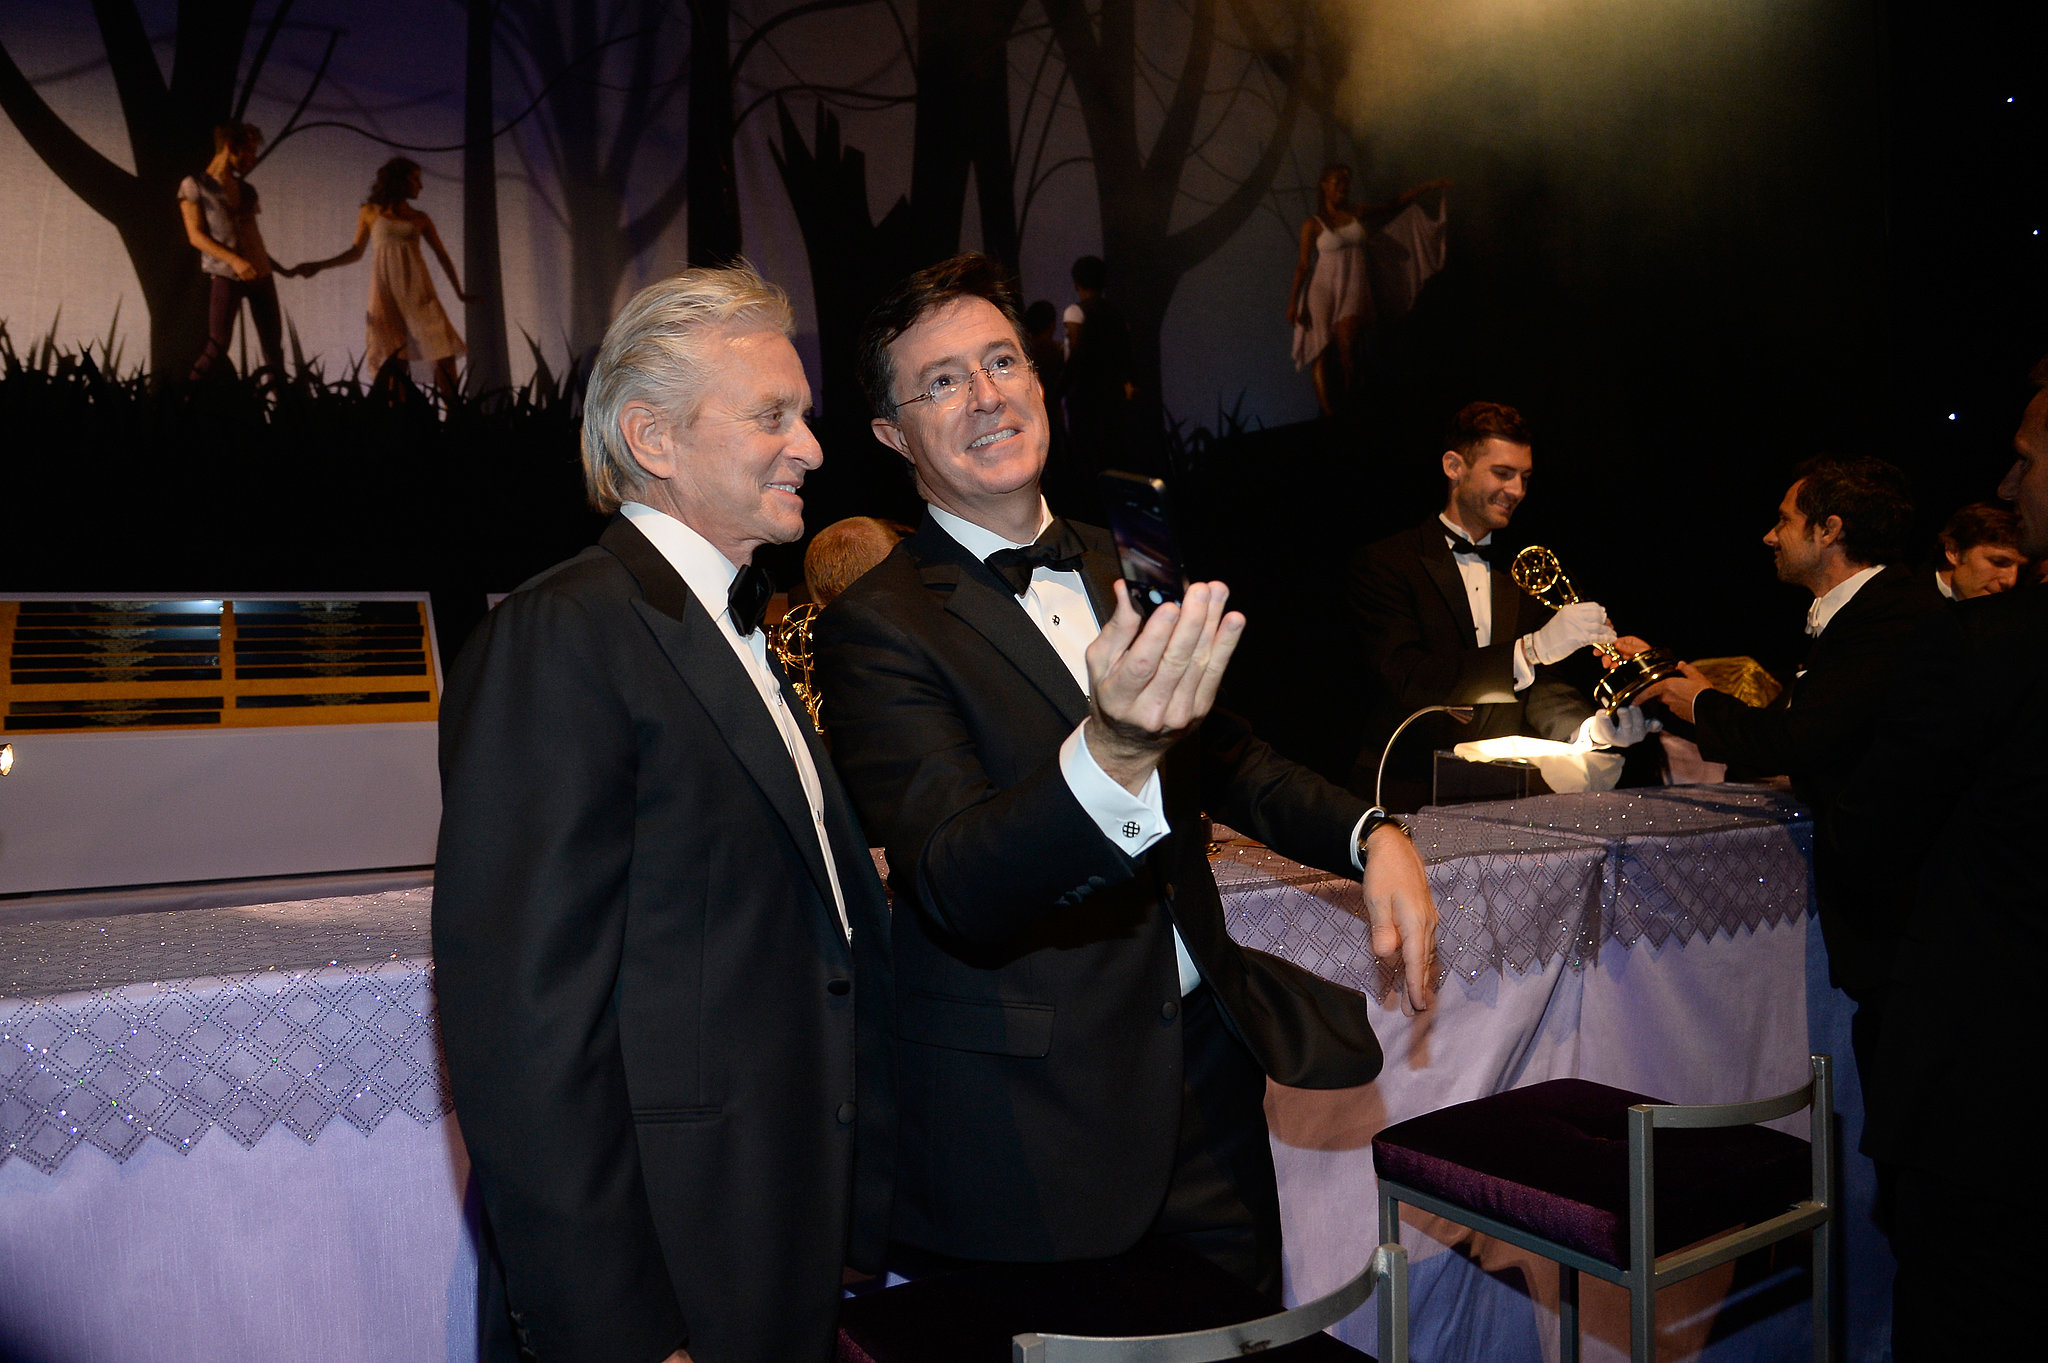 Stephen Colbert and Michael Douglas met up at the 2013 Emmys Governors Ball.